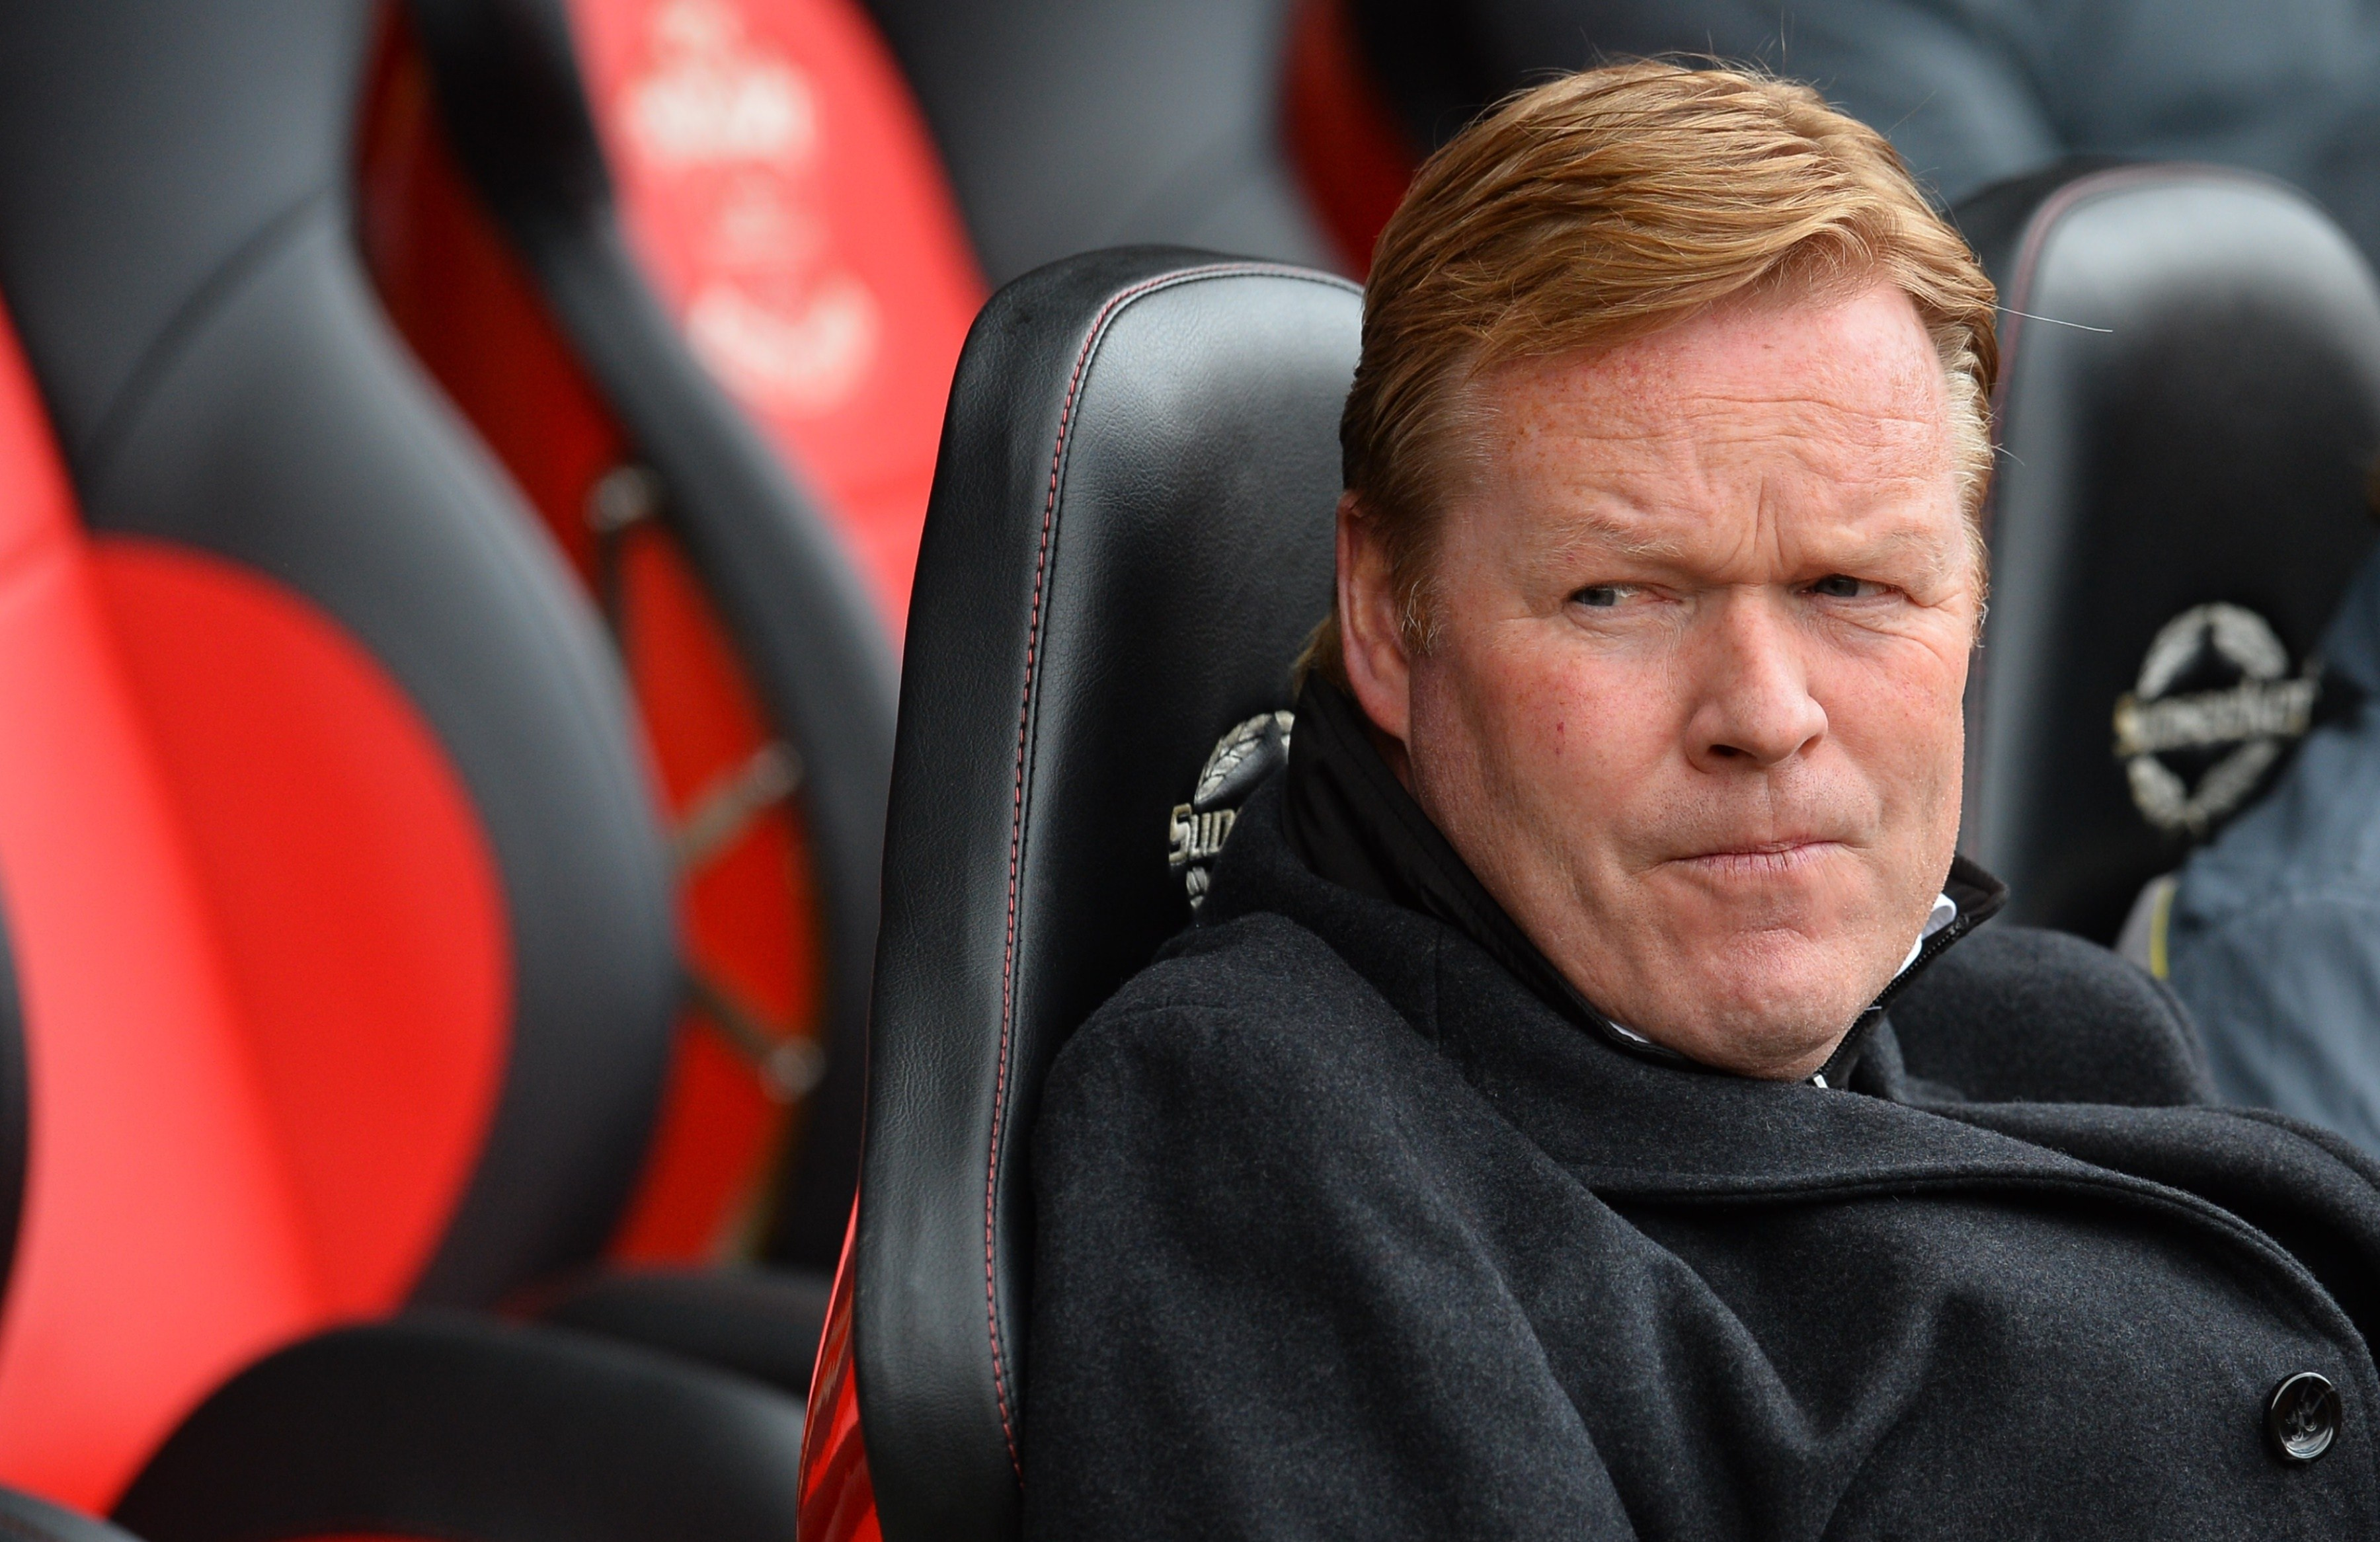 Chelsea planning for Jose Mourinho sack, Southampton's Ronald Koeman emerges as new target – report